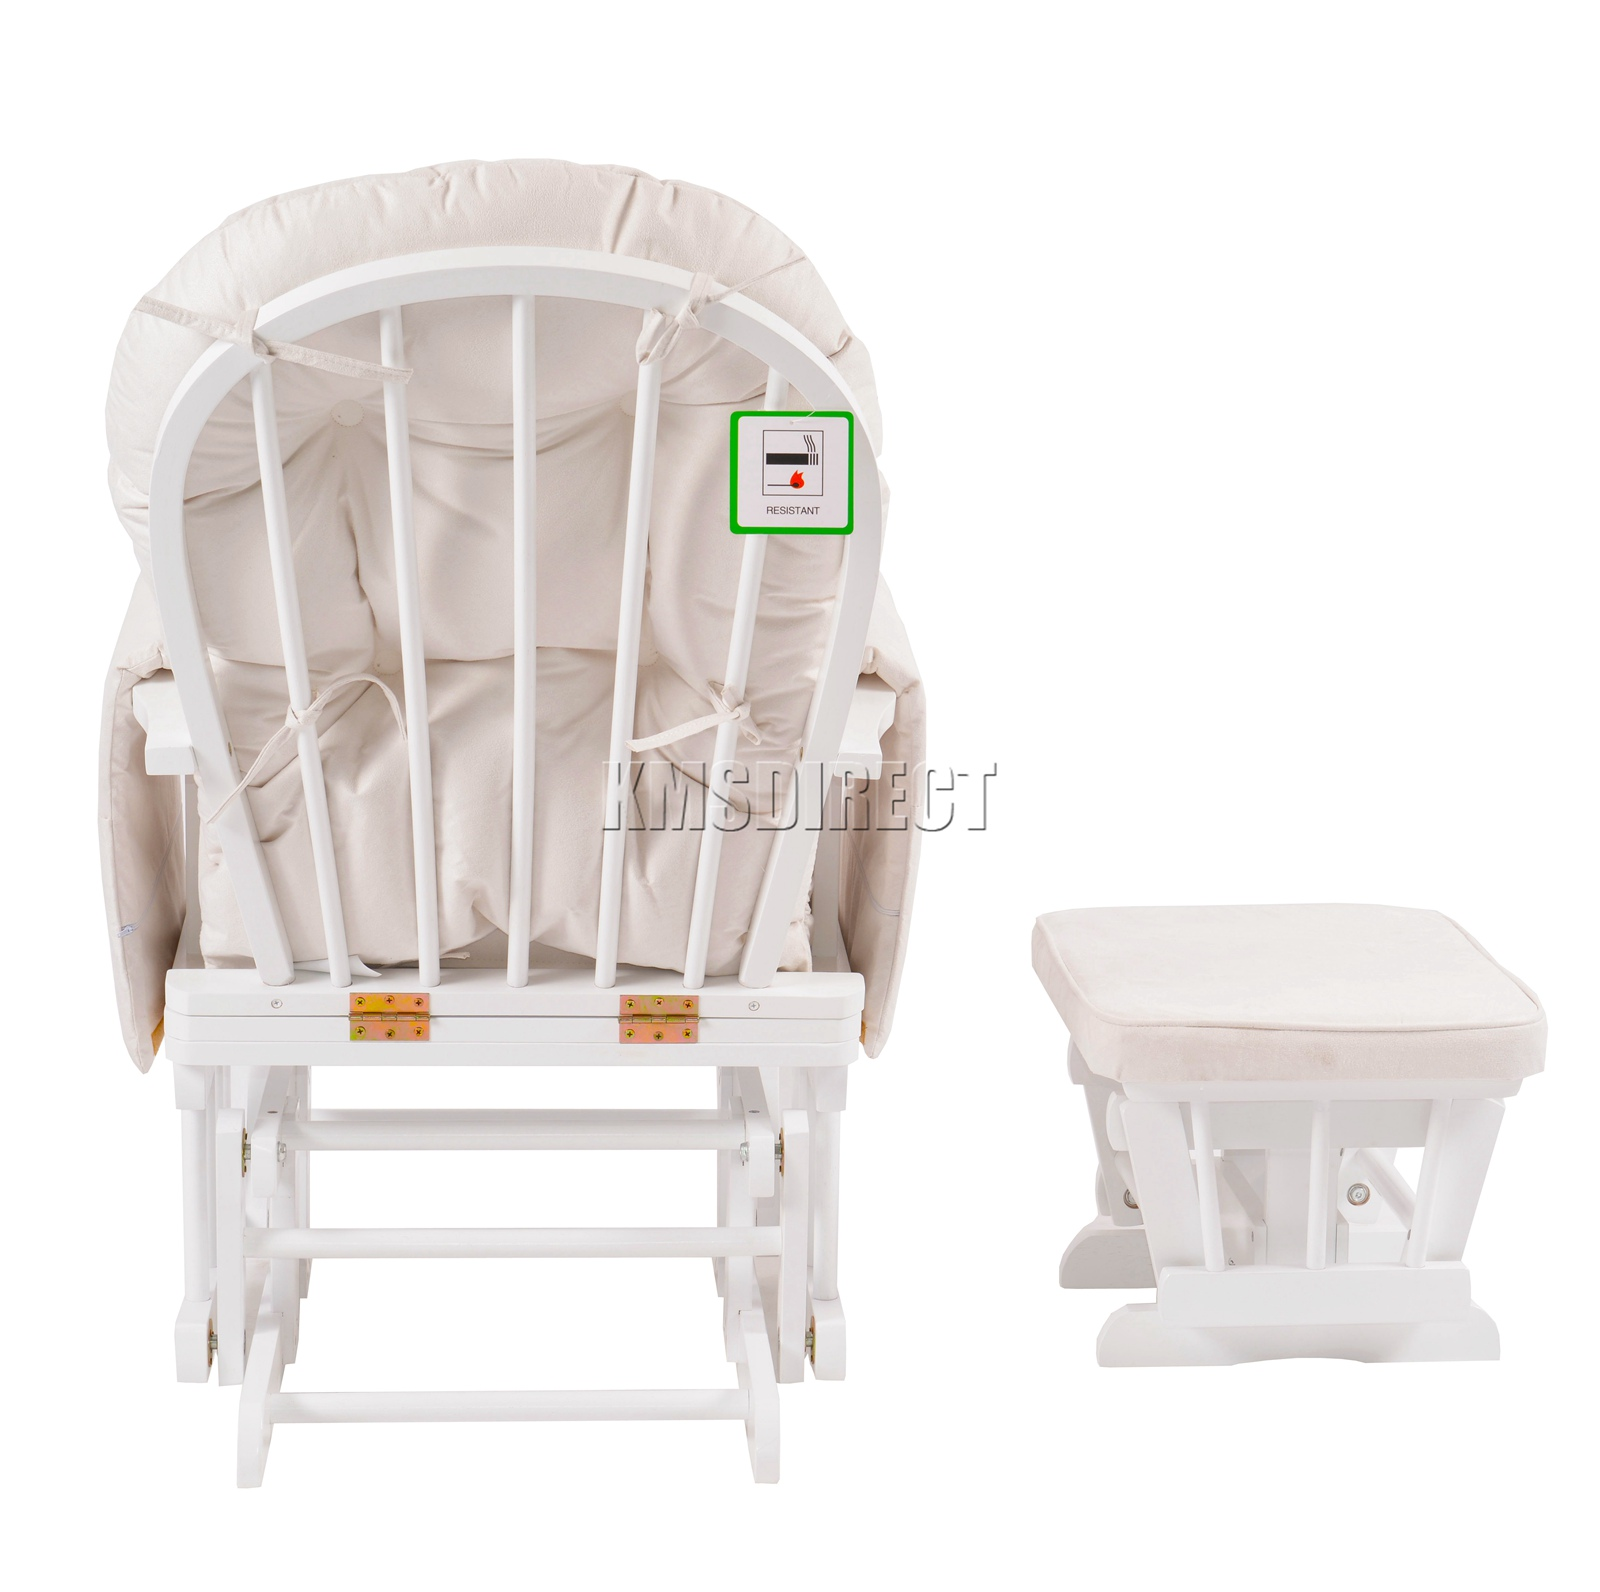 FoxHunter-Nursing-Glider-Maternity-Rocking-Chair-With-Stool-White-Wood-Frame-New miniatuur 28